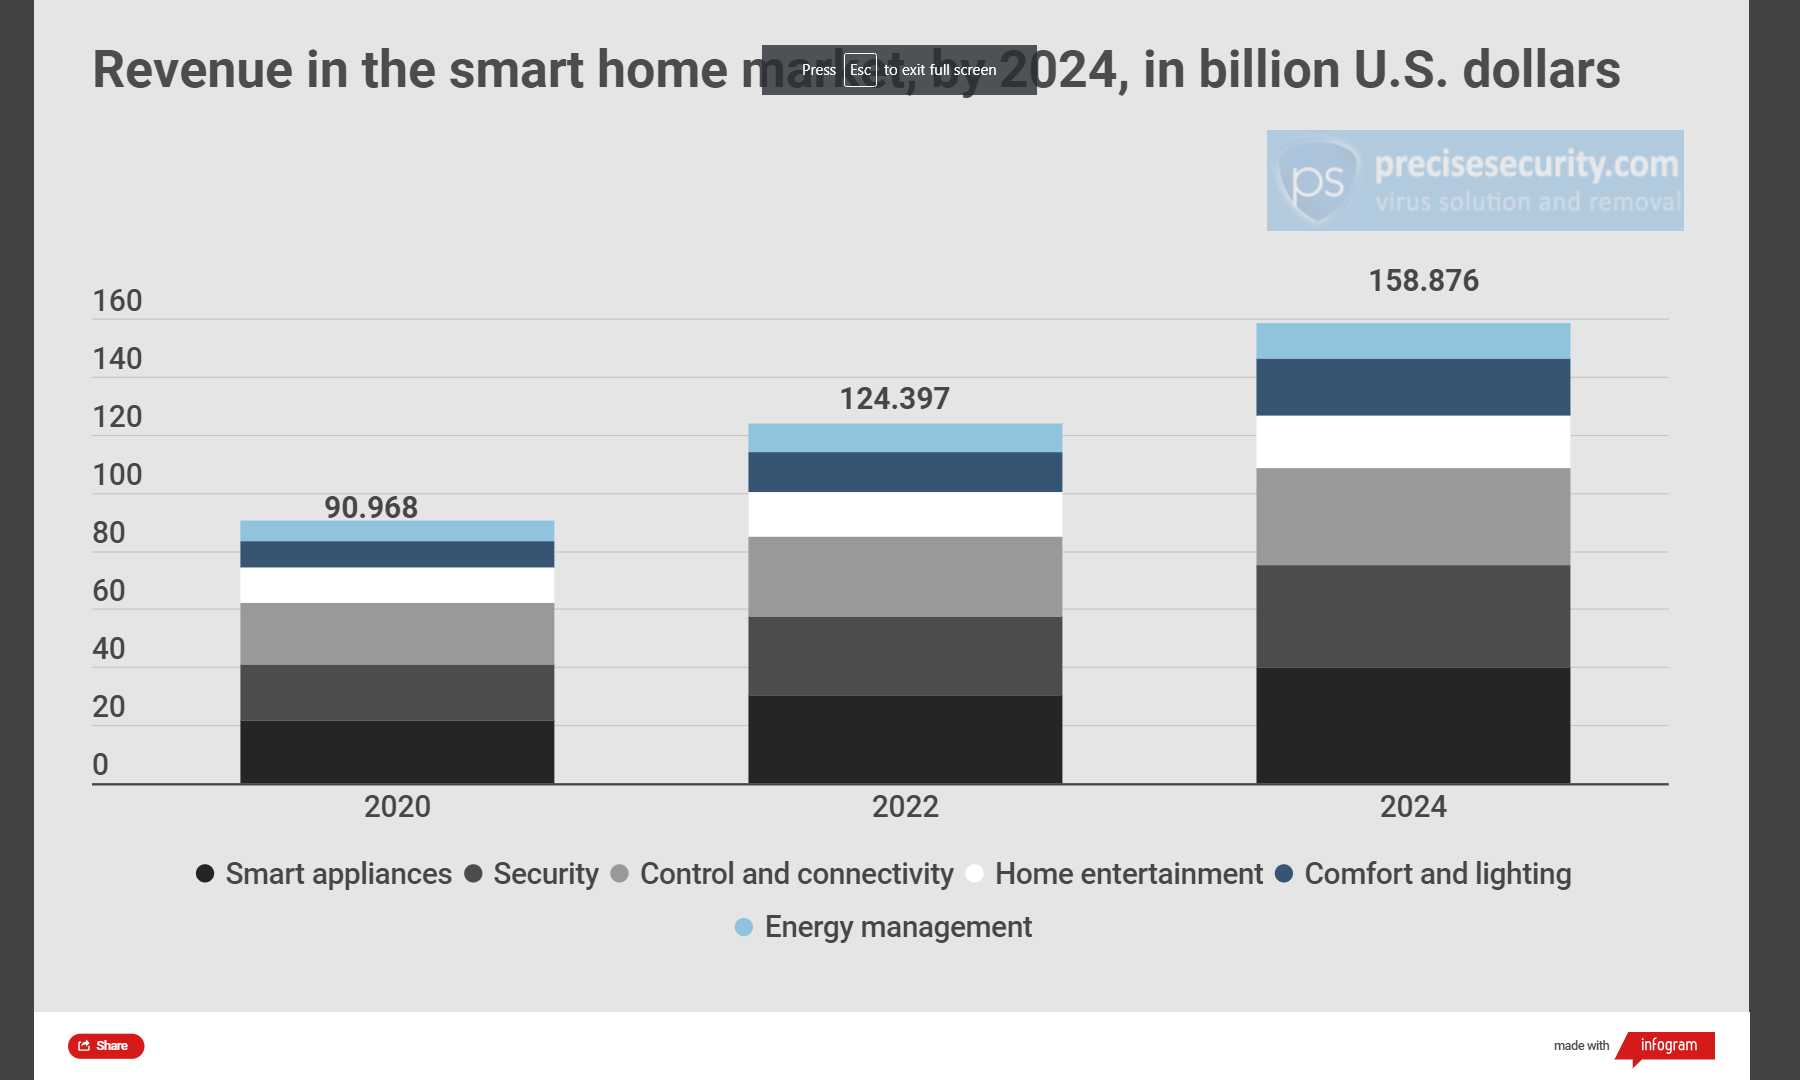 Global smart home market to hit $158 Billion value by 2024